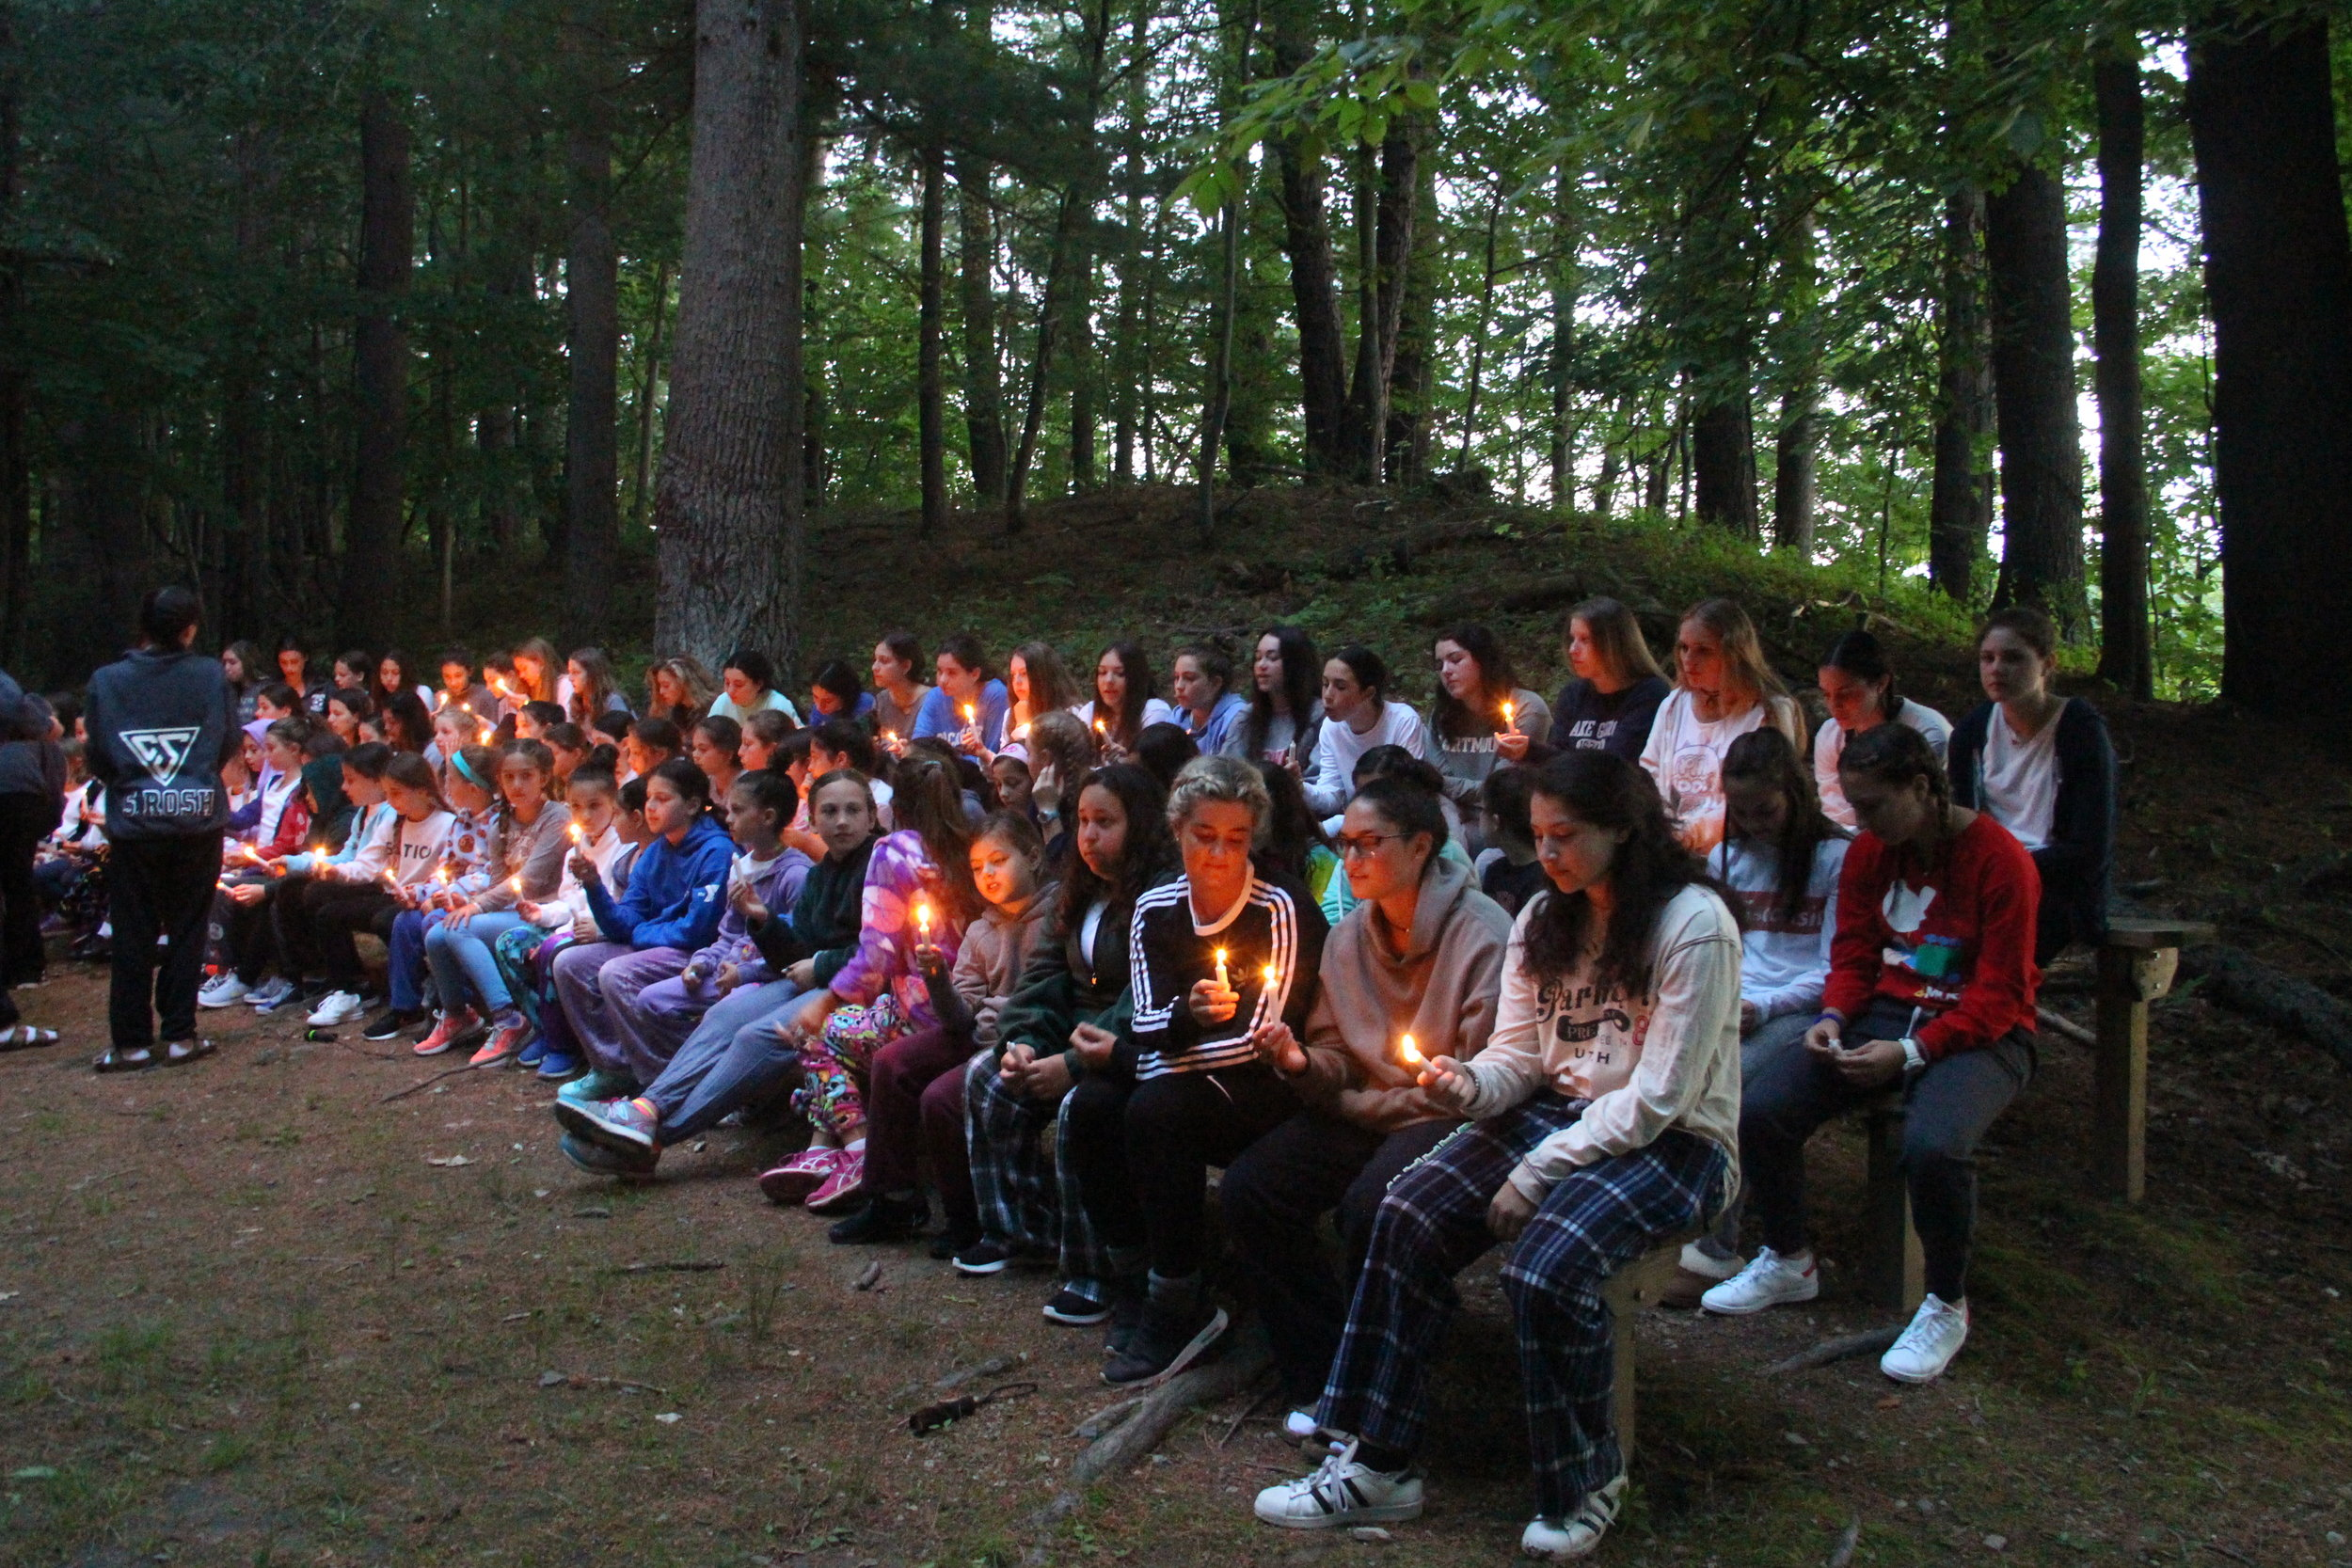 Campers of all ages light a candle during the campfire to make a wish.